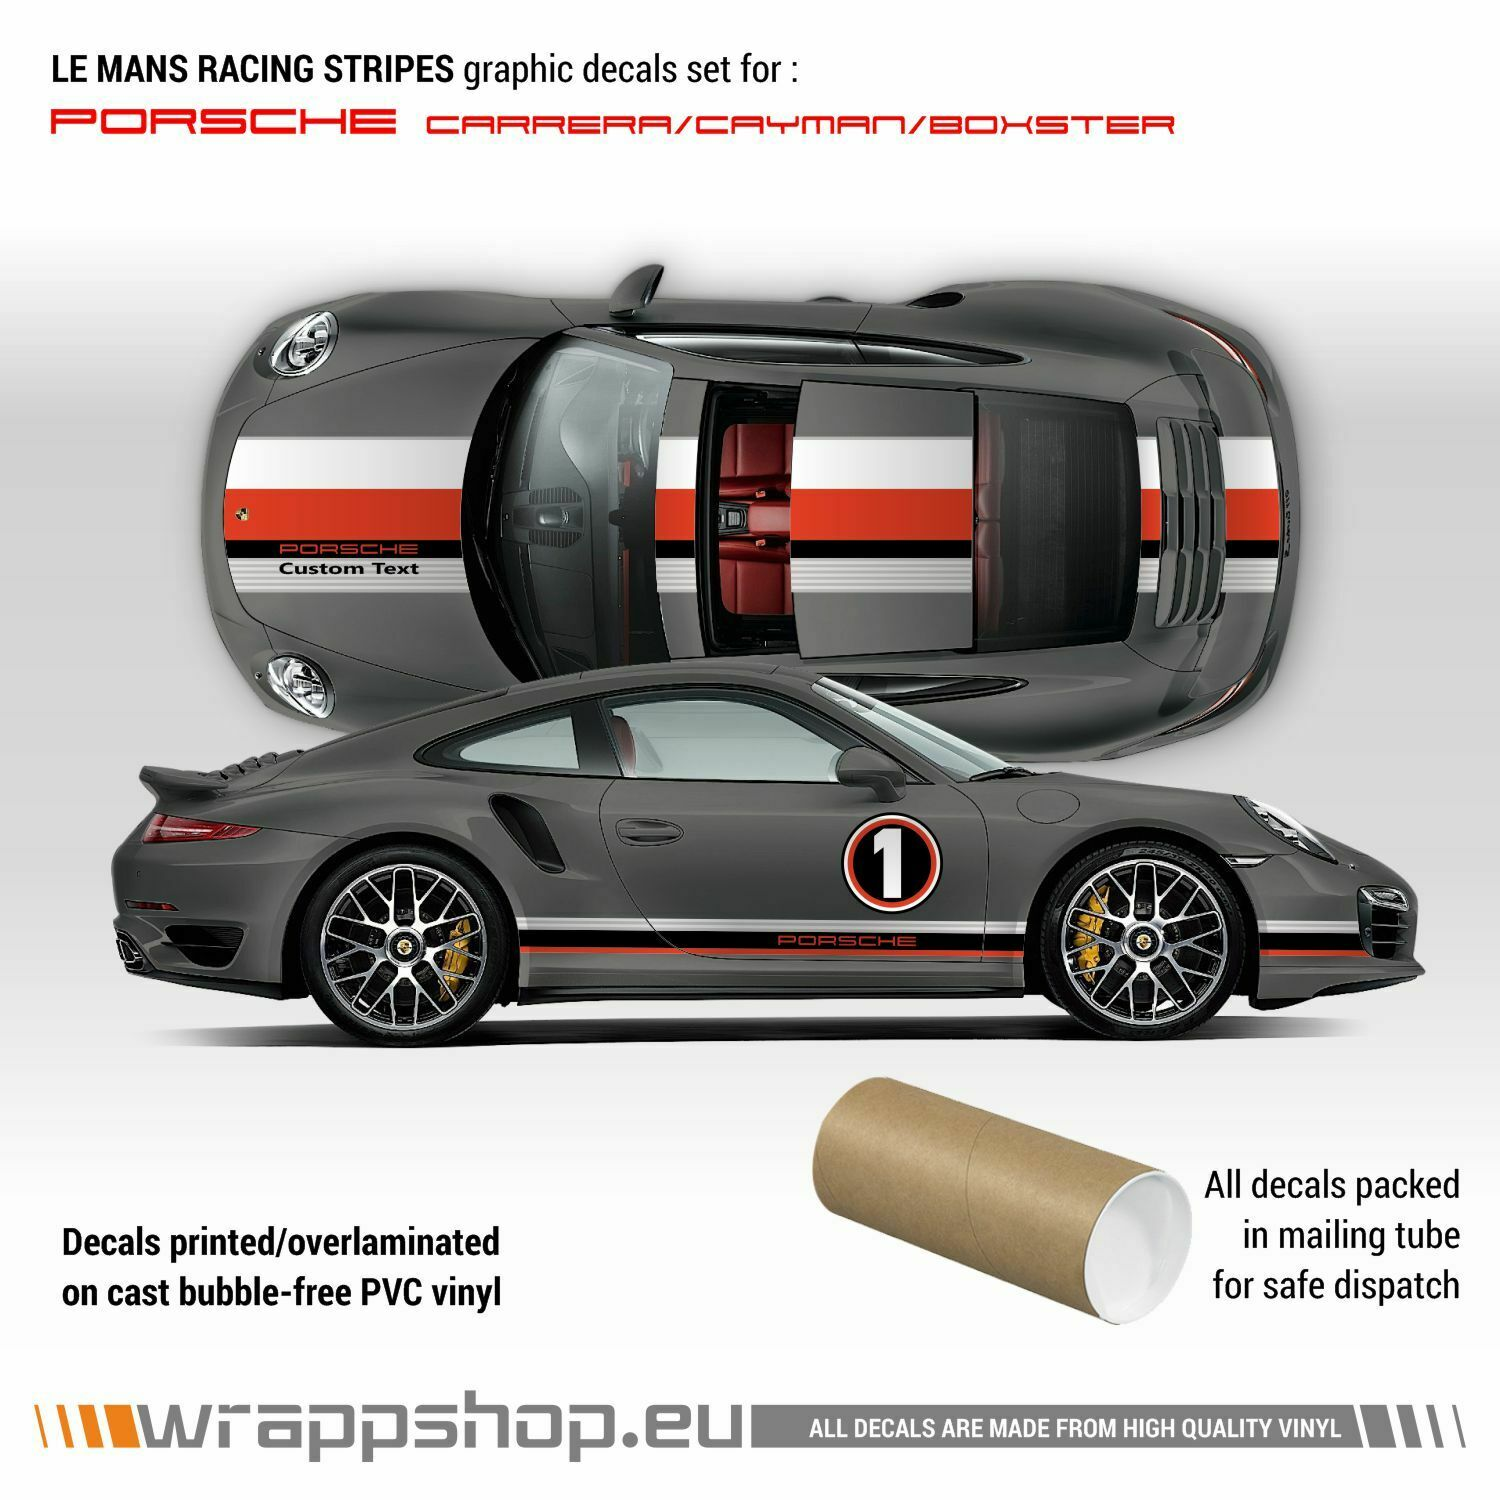 Le Mans Racing Stripes Graphic Decals Set For Porsche Carrera Cayman Boxster Ebay